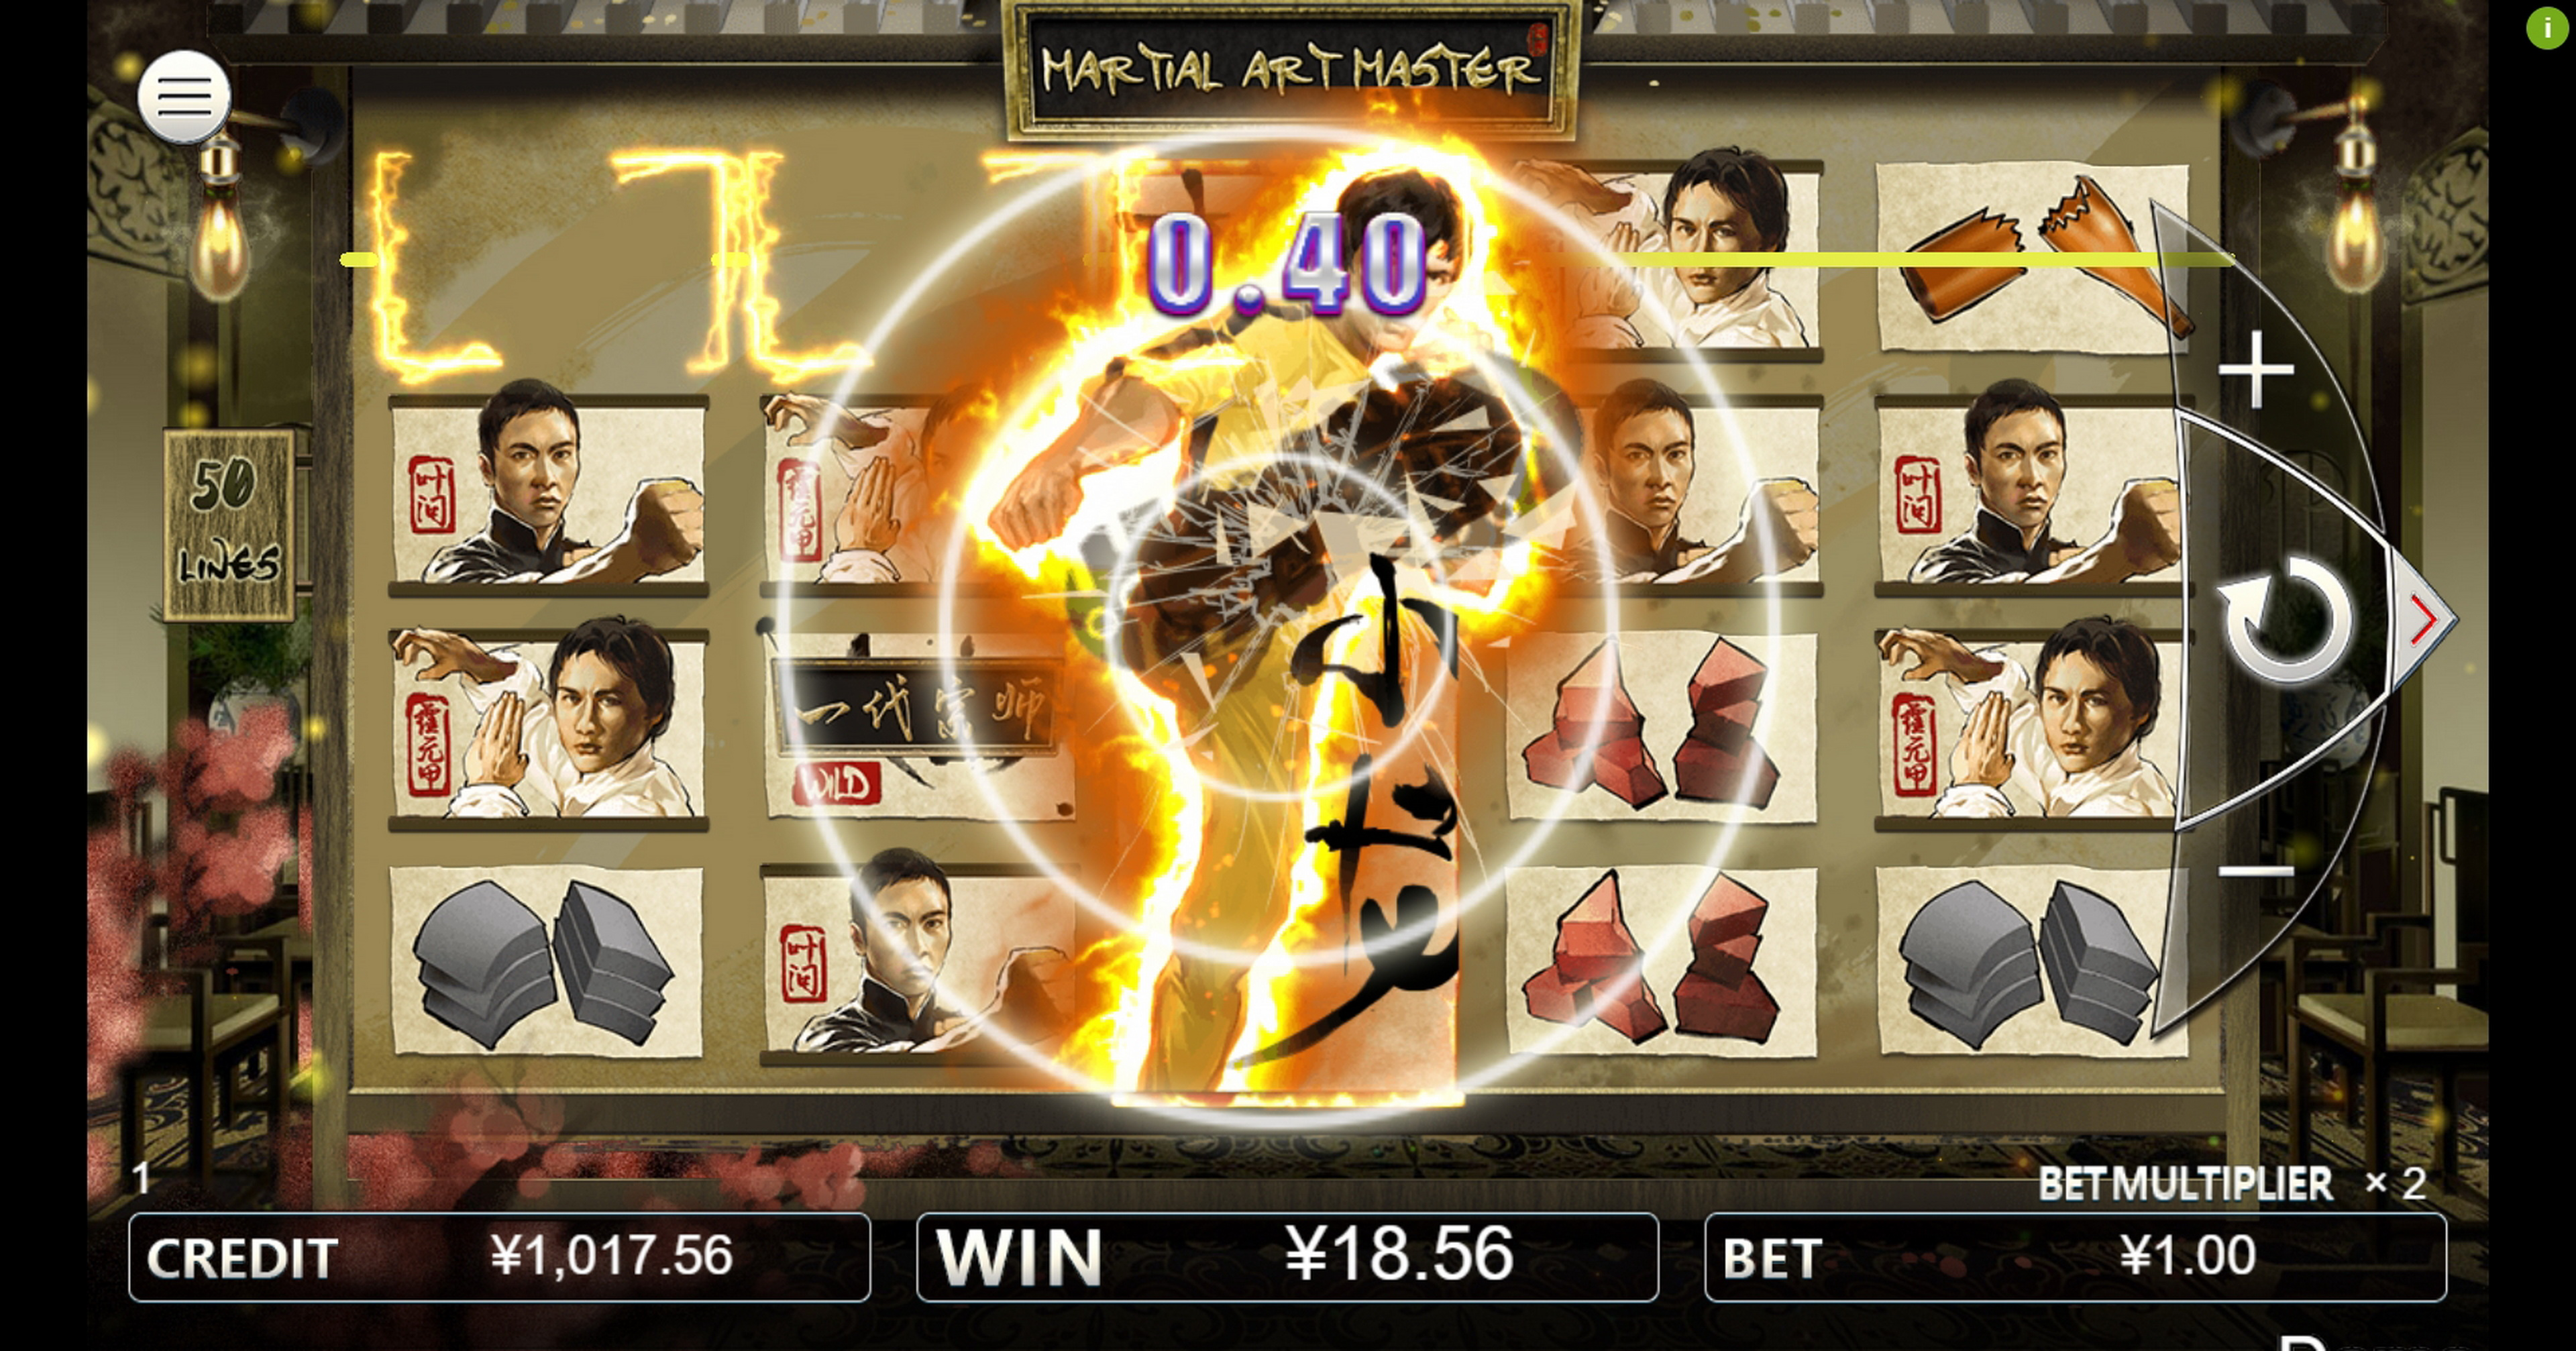 Win Money in Martial Art Master Free Slot Game by Iconic Gaming